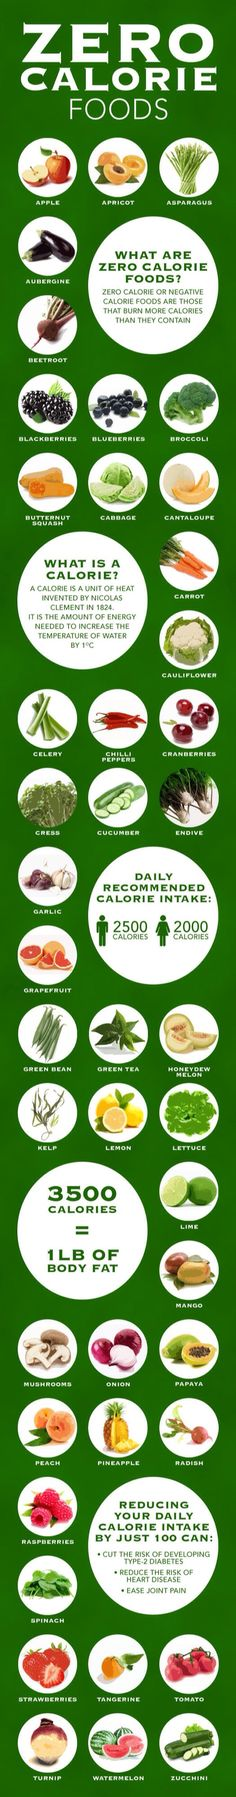 Some Great Snacks For When You Are Feeling Hungry Between Meals!